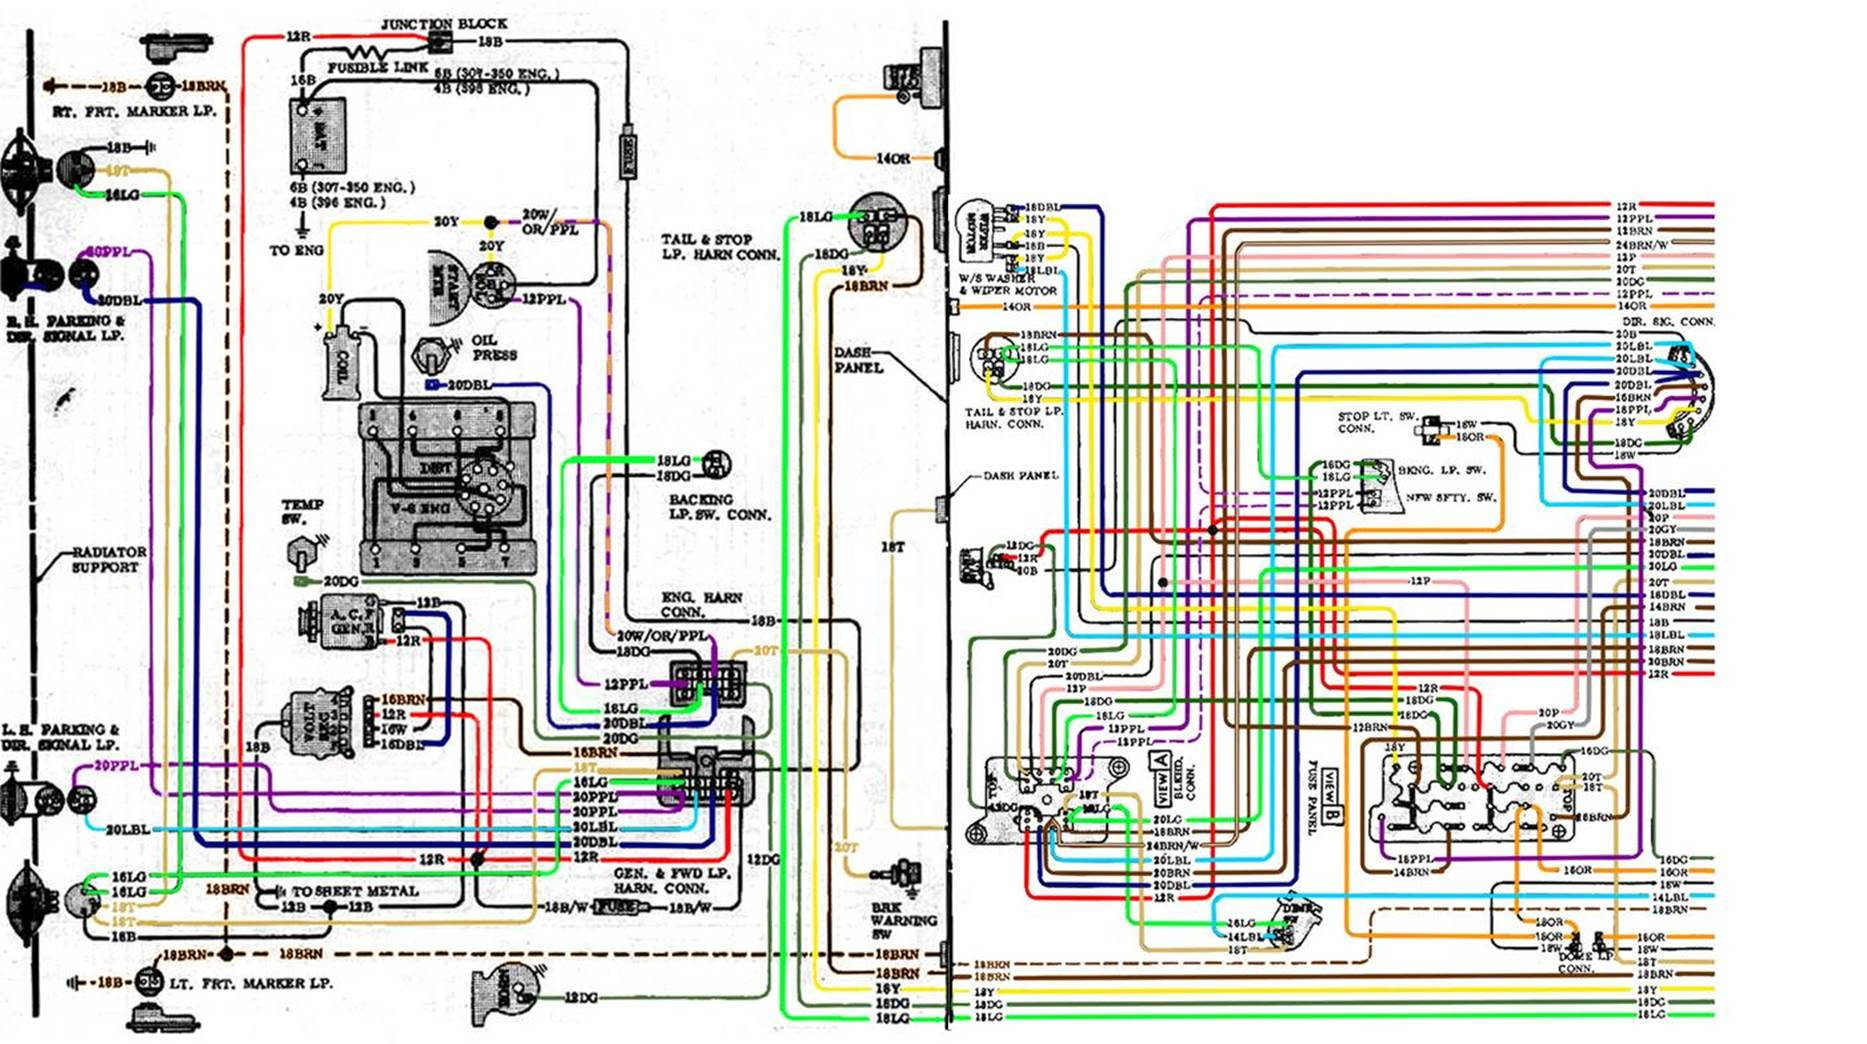 image002 72 c10 wiring diagram chevy truck wiring diagram \u2022 wiring diagrams 1968 Chevy C10 Wiring-Diagram at bayanpartner.co